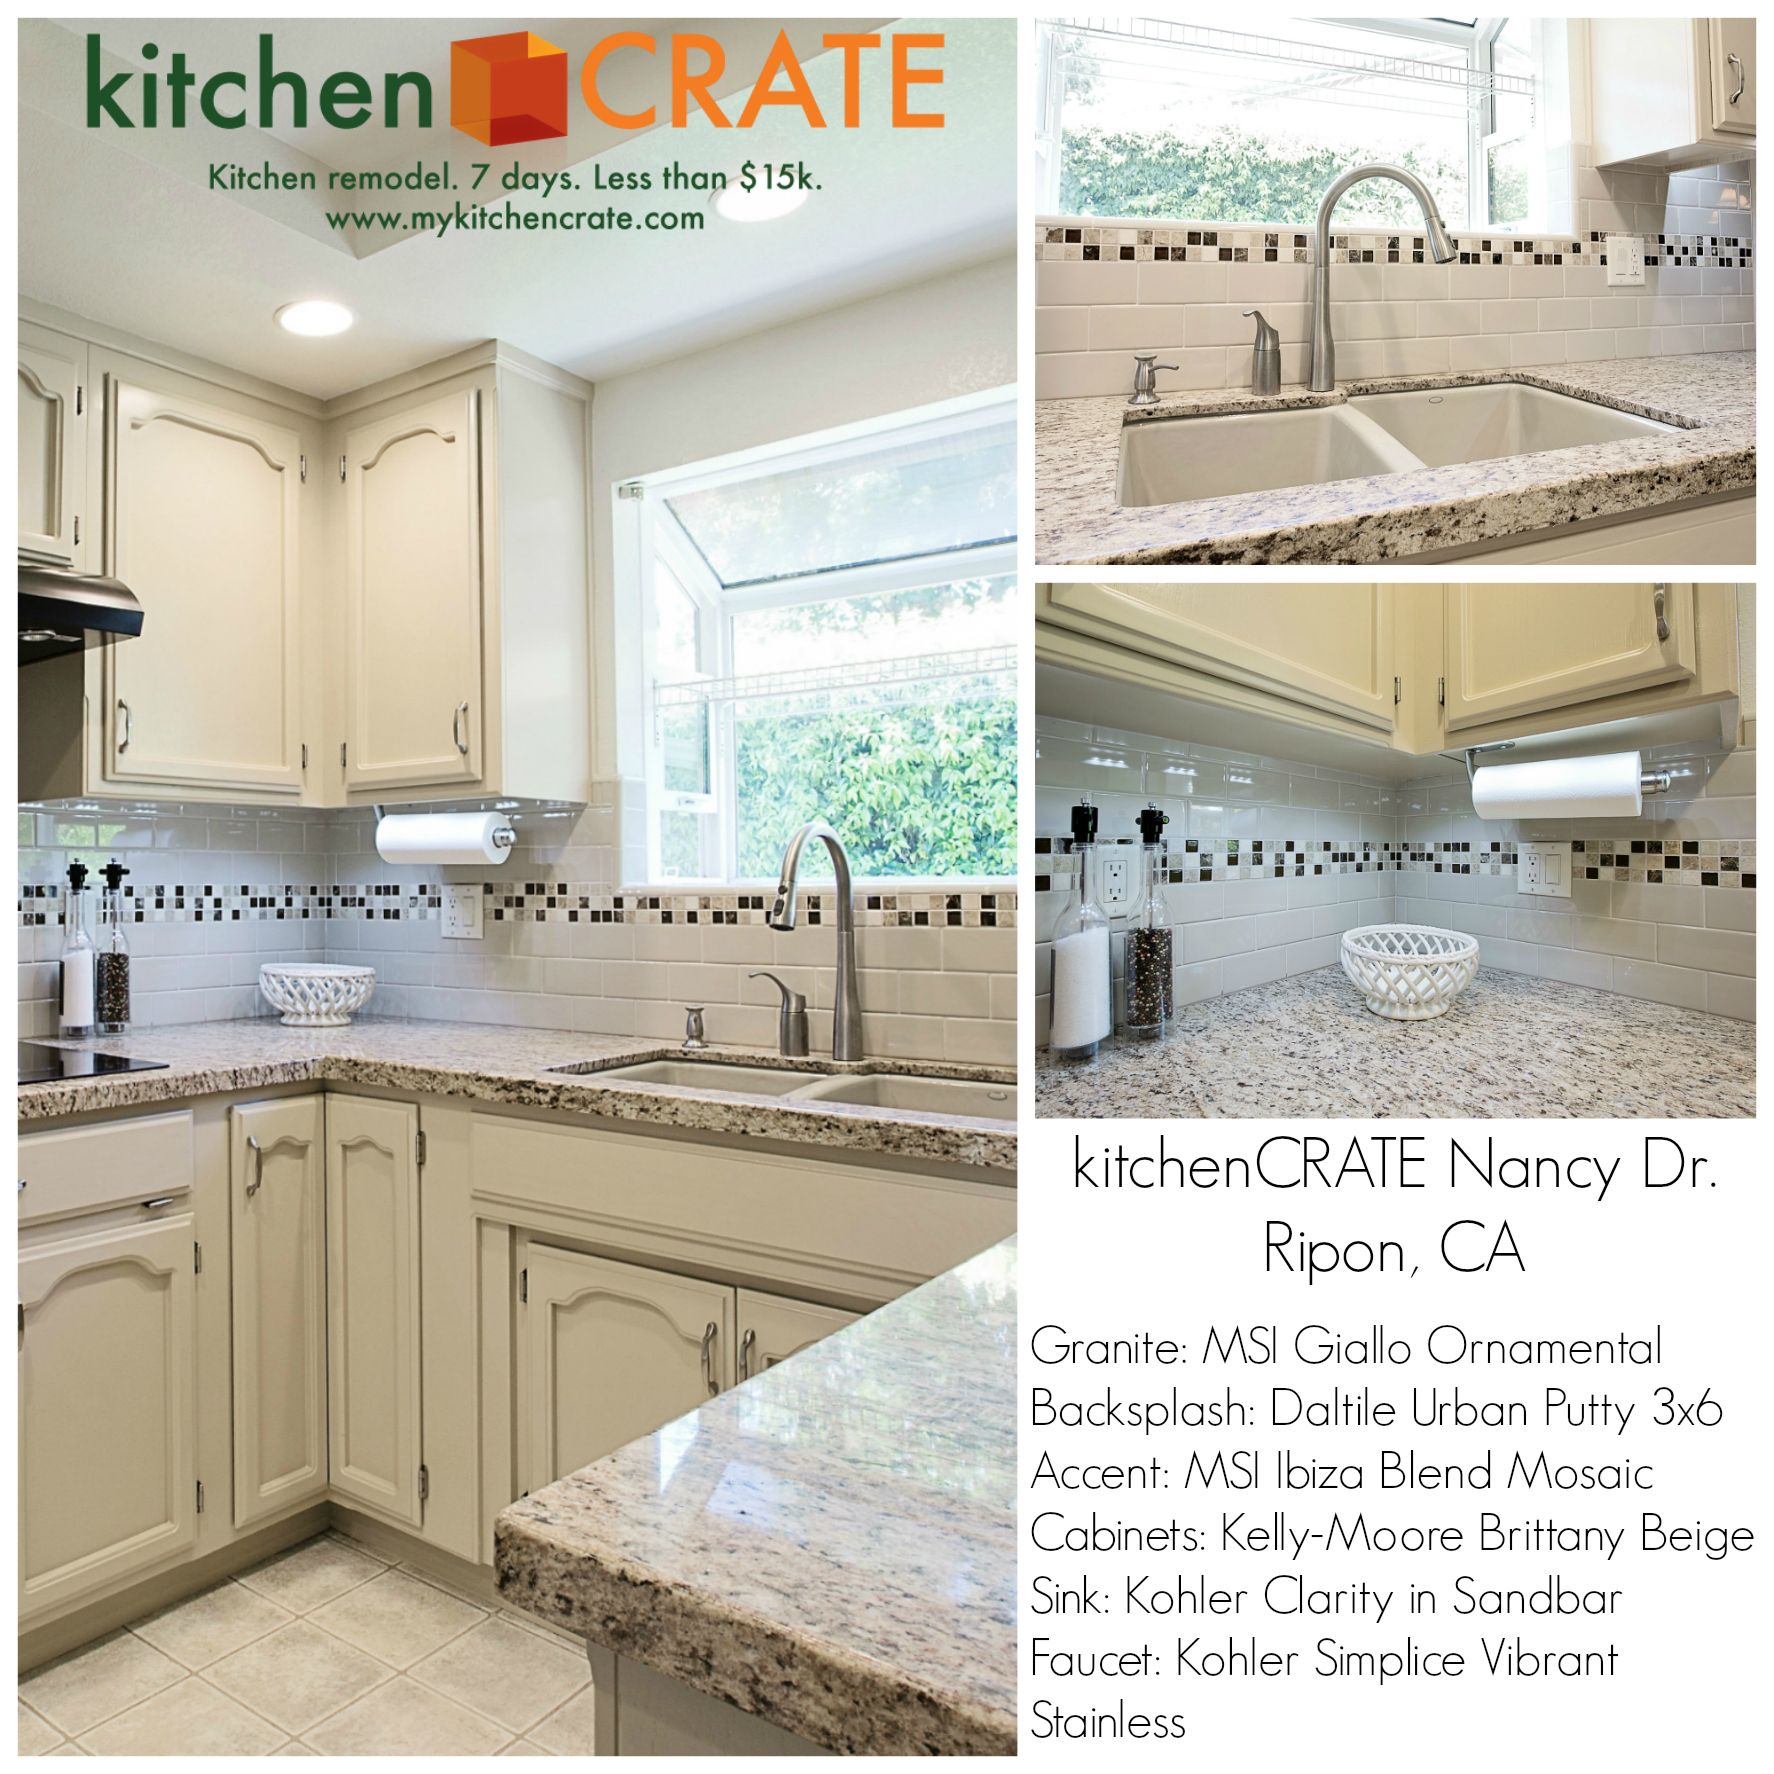 Dark Beige Kitchen Cabinets: Giallo Ornamental Granite And Kelly-Moore Brittany Beige